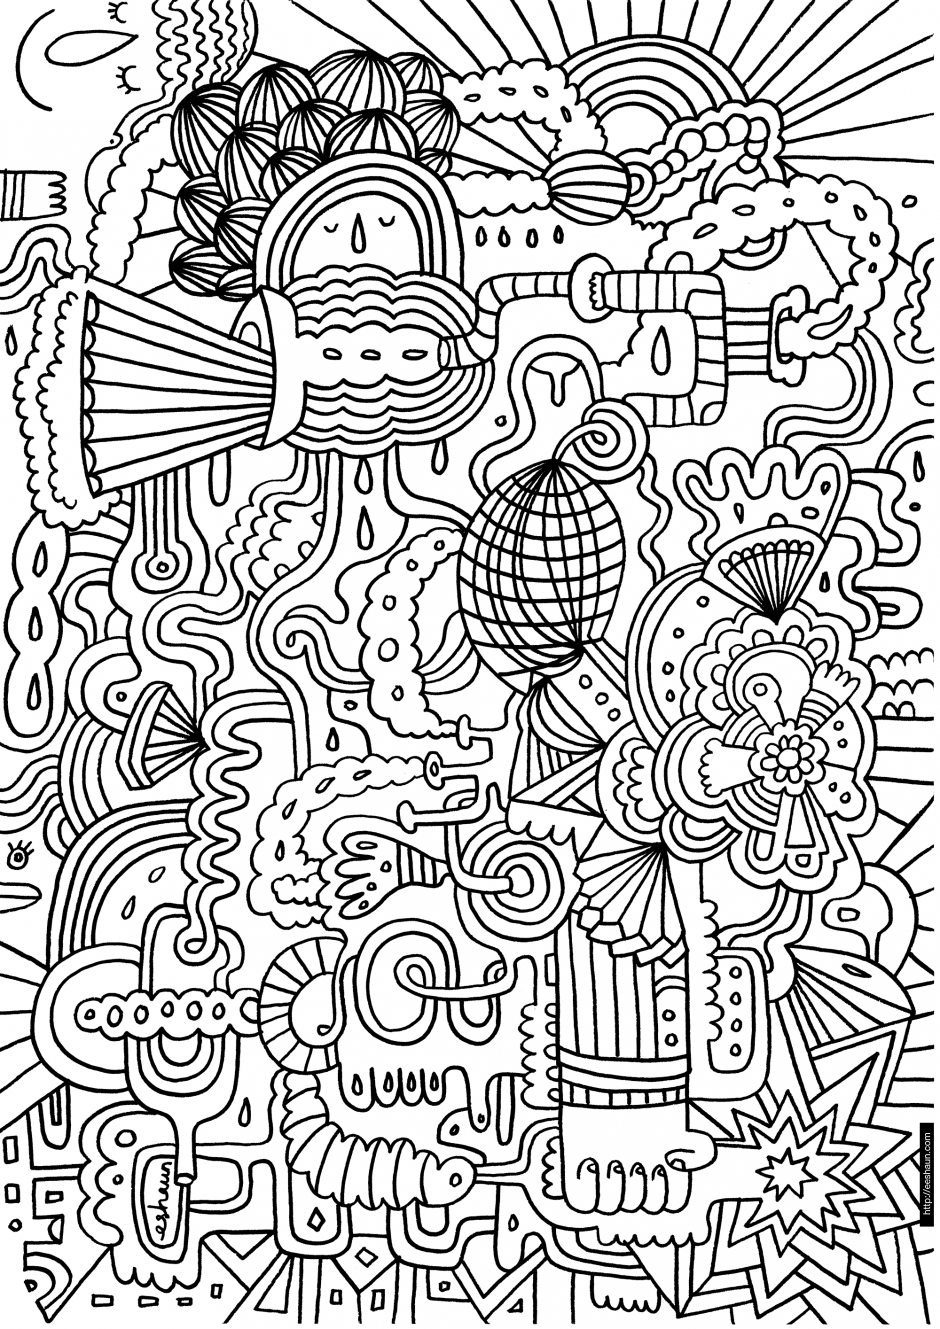 coloring pages for girls age 11 teenage coloring pages free printable coloring home 11 pages for girls age coloring